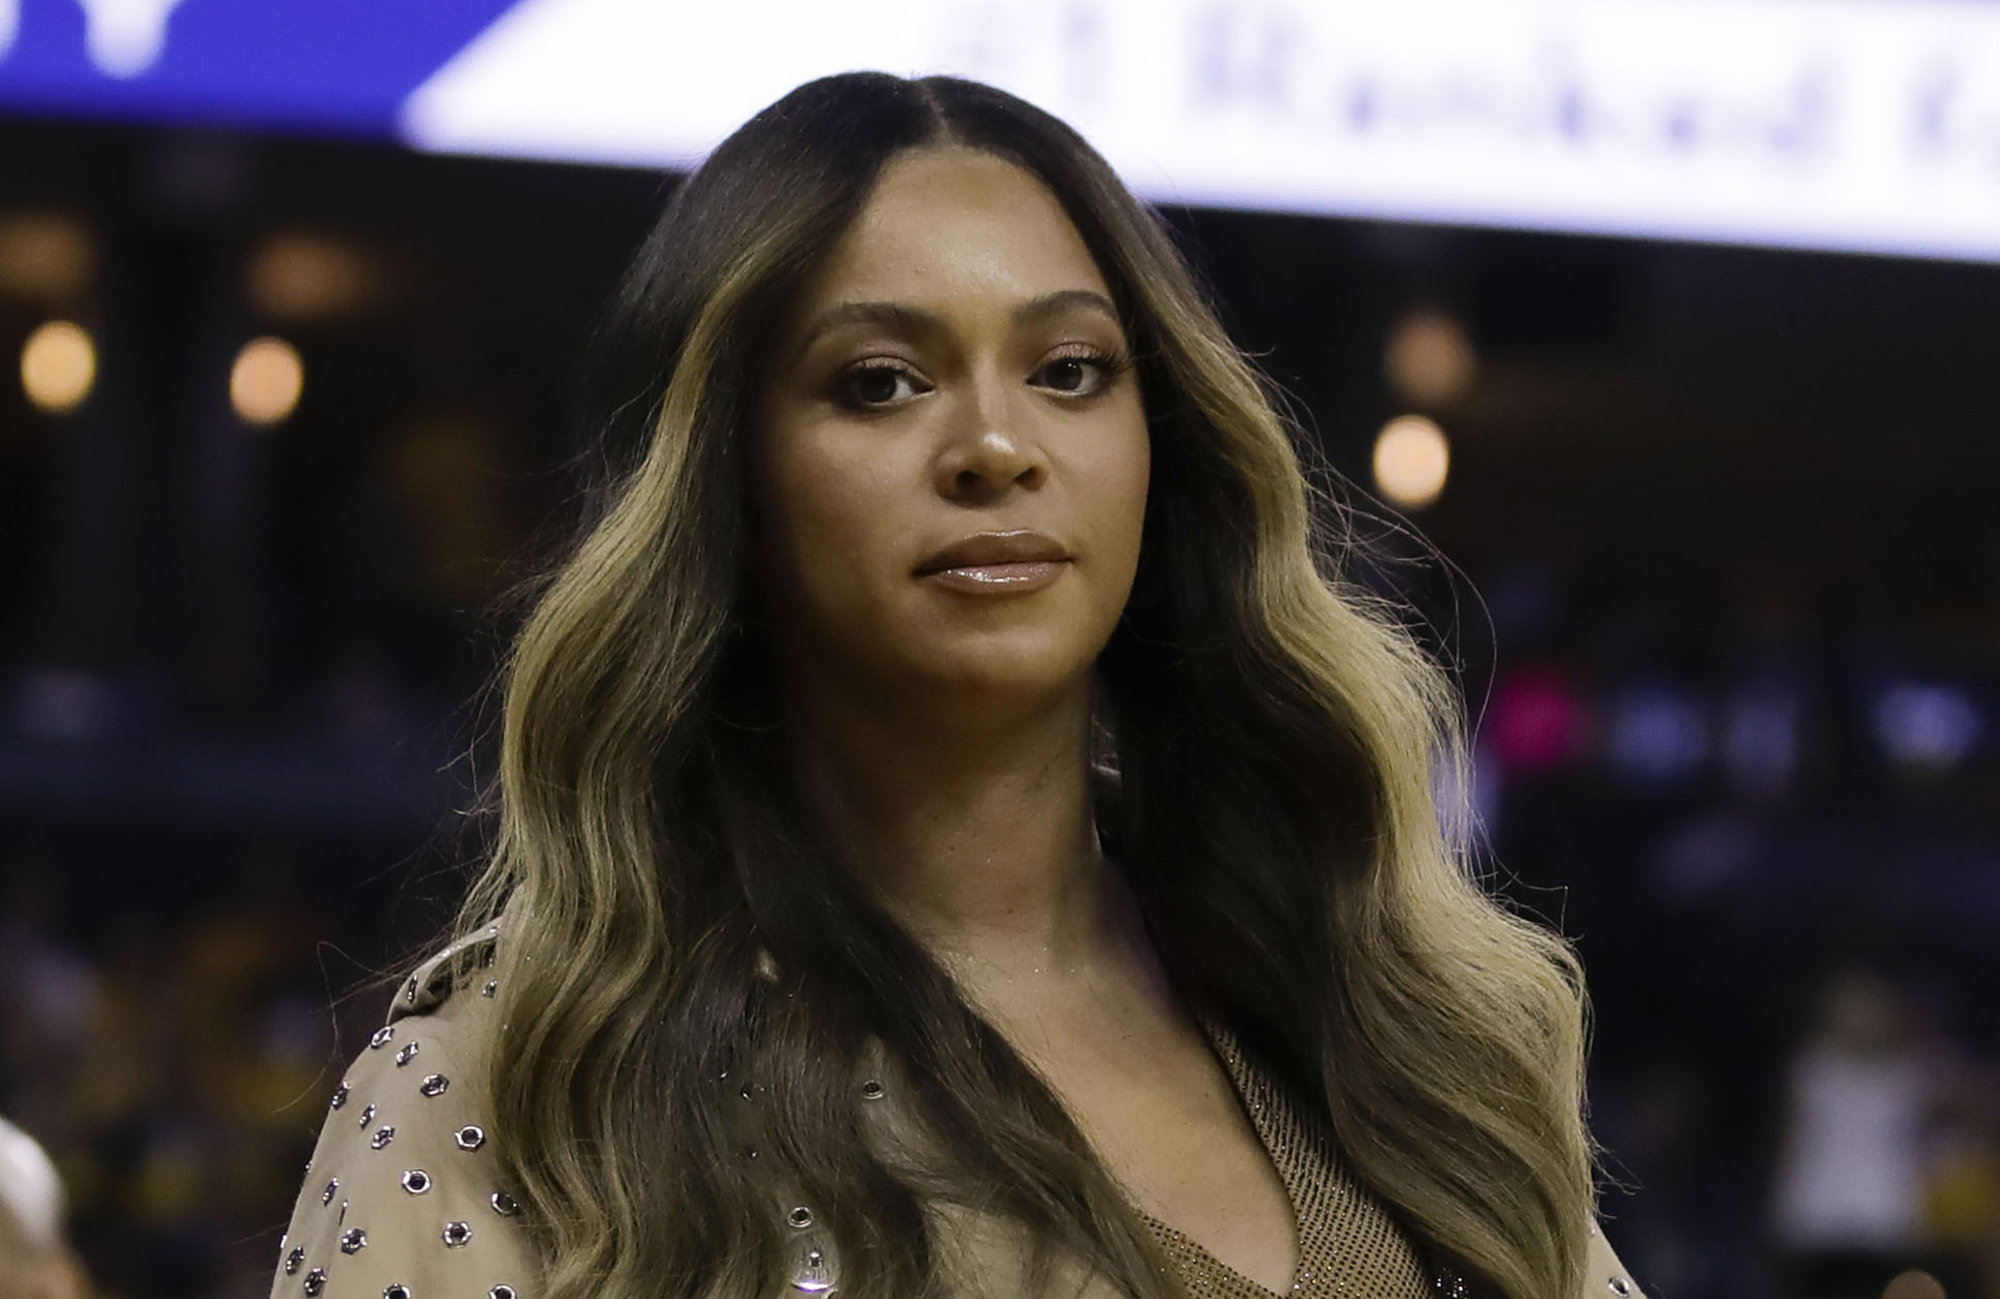 Beyoncé Offers Musical Tribute To 13-Year-Old Fan Who Lost Her Battle With Brain Cancer